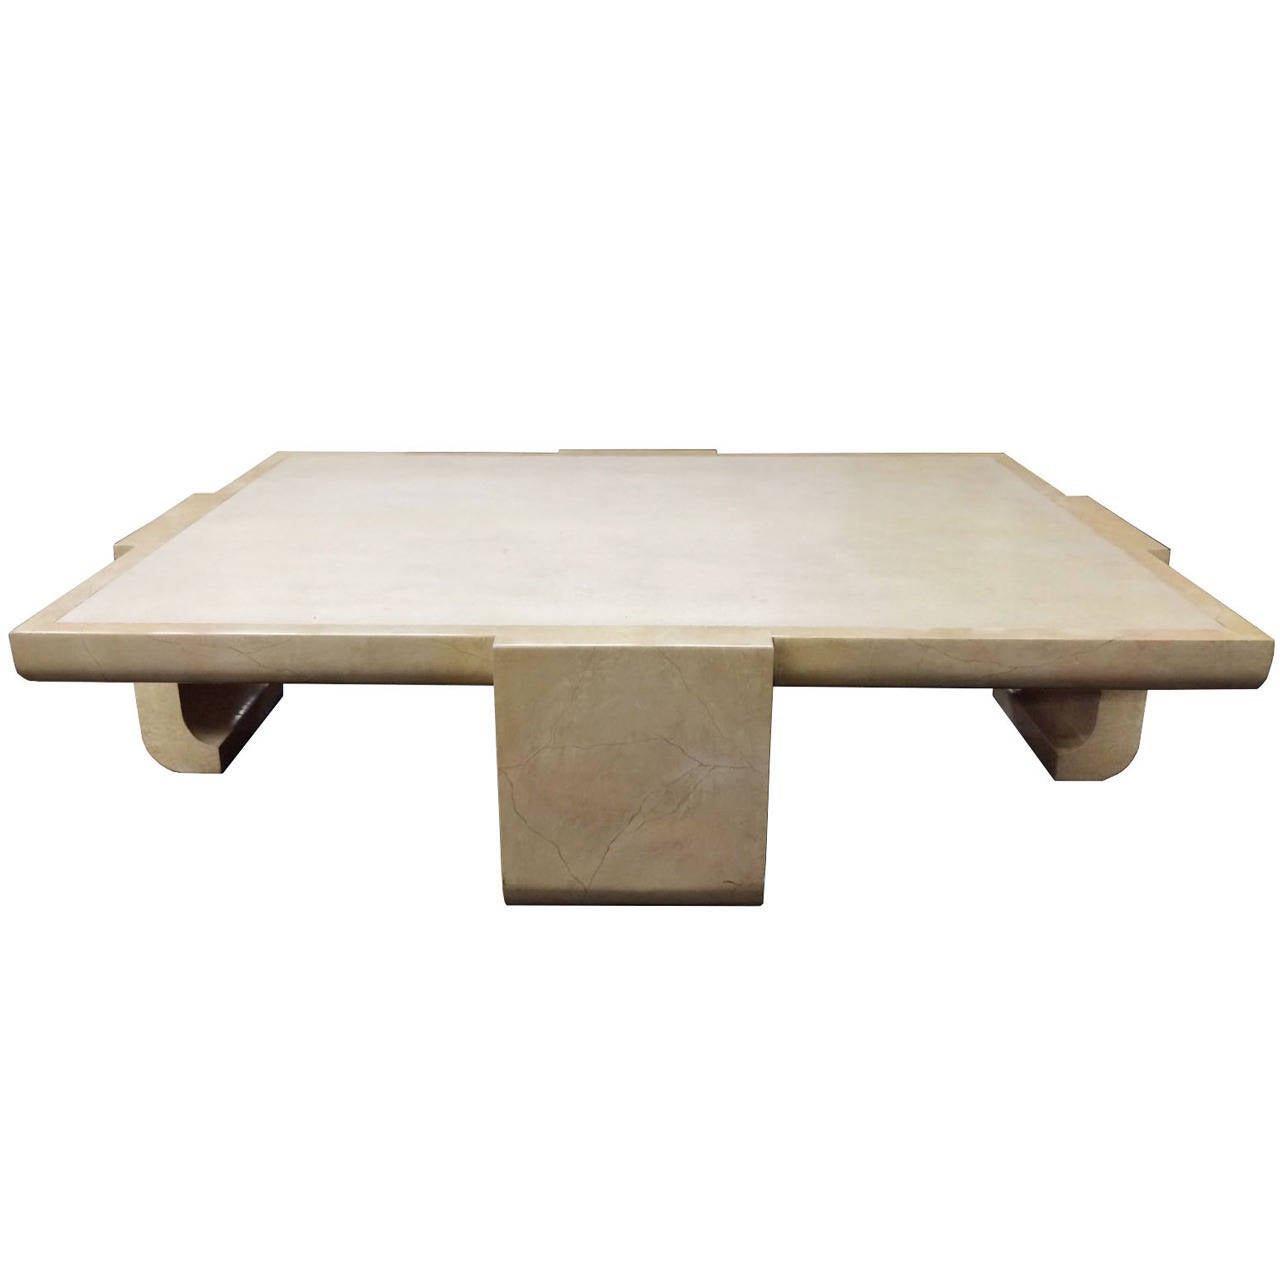 Monumental Asian Inspired Coffee Table By Alessandro For Baker At 1stdibs